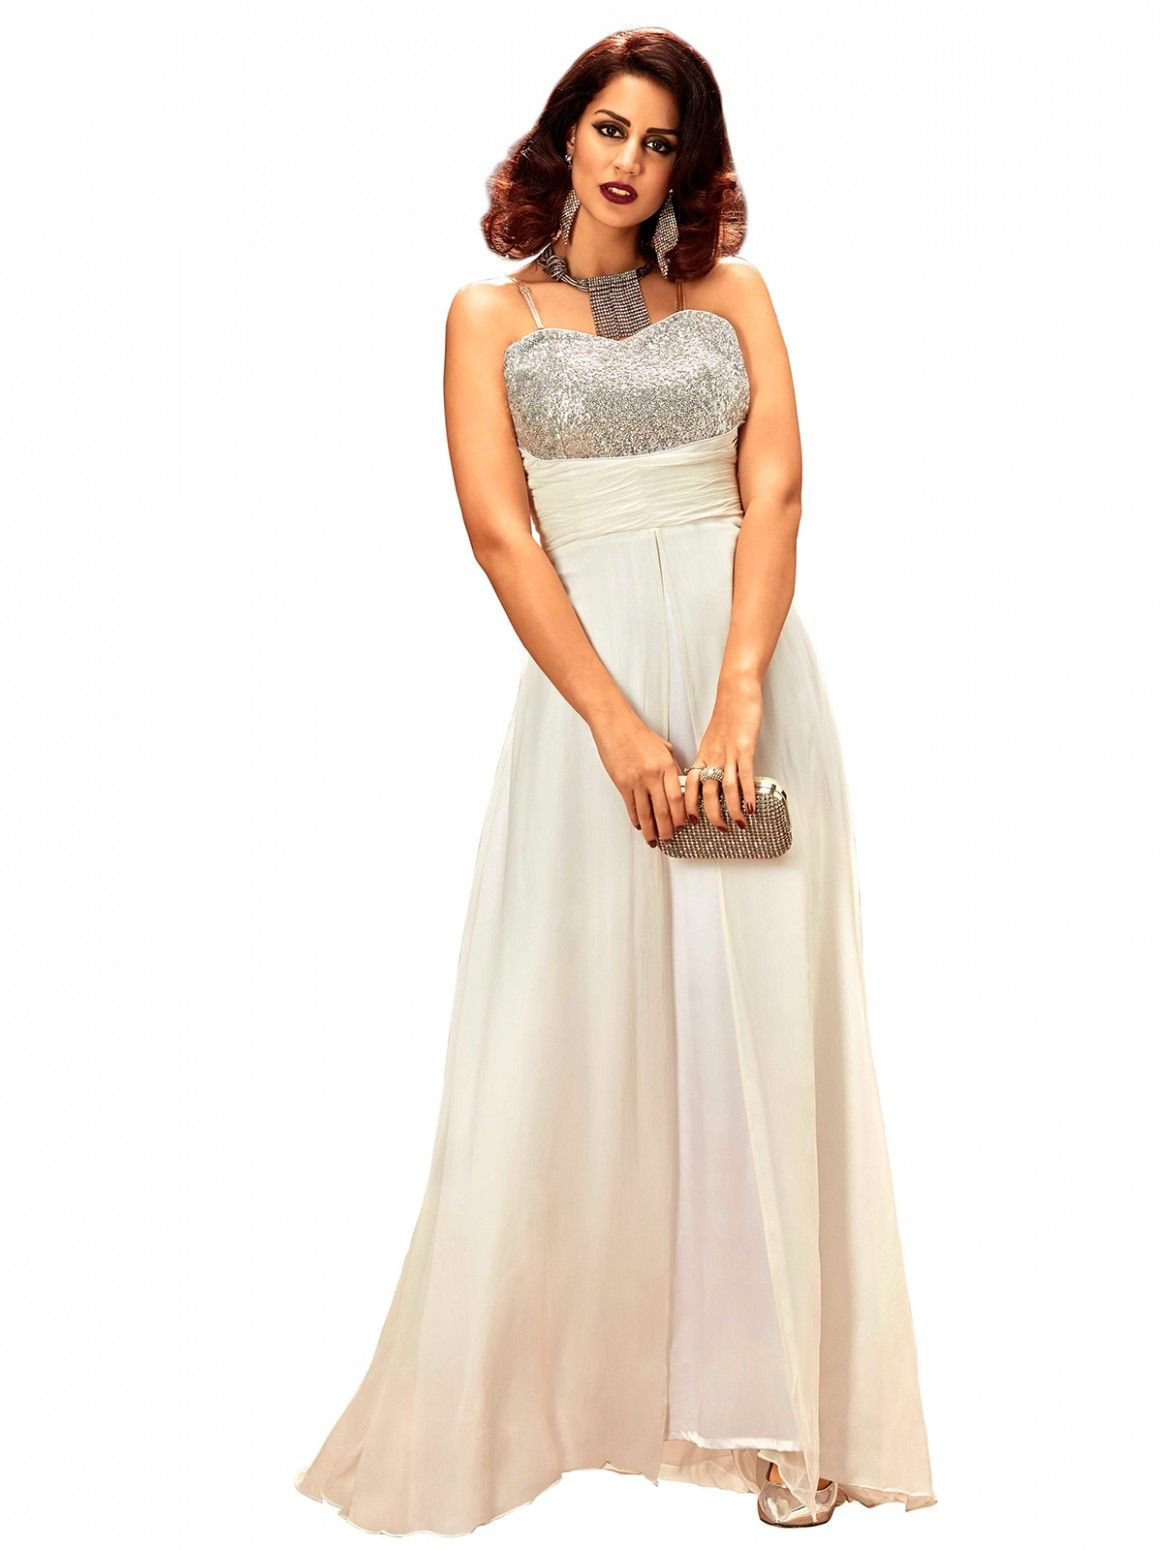 Buy Khwaab Strapless Sweetheart Neck Line Off-White Gown Online at ...